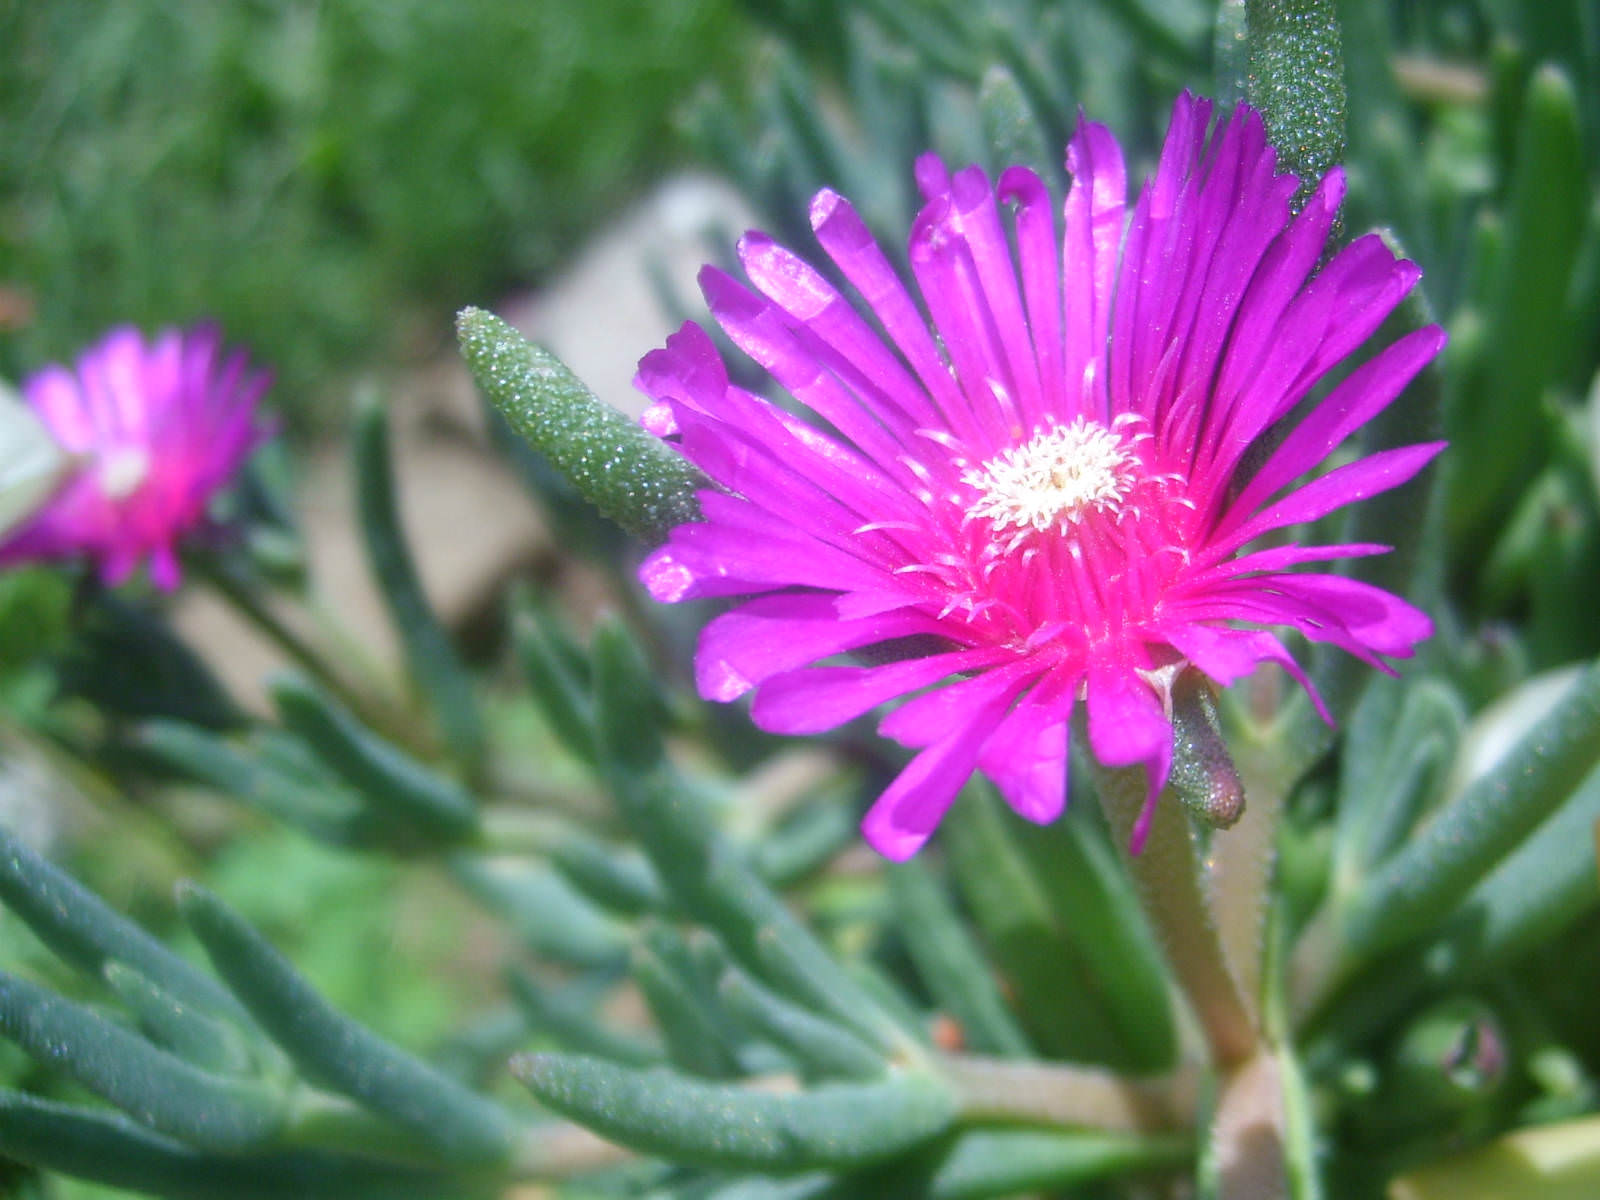 Delosperma cooperi pink carpet world of flowering plants the daisy like flowers are magenta or pink in color up to 2 inches 5 cm in diameter izmirmasajfo